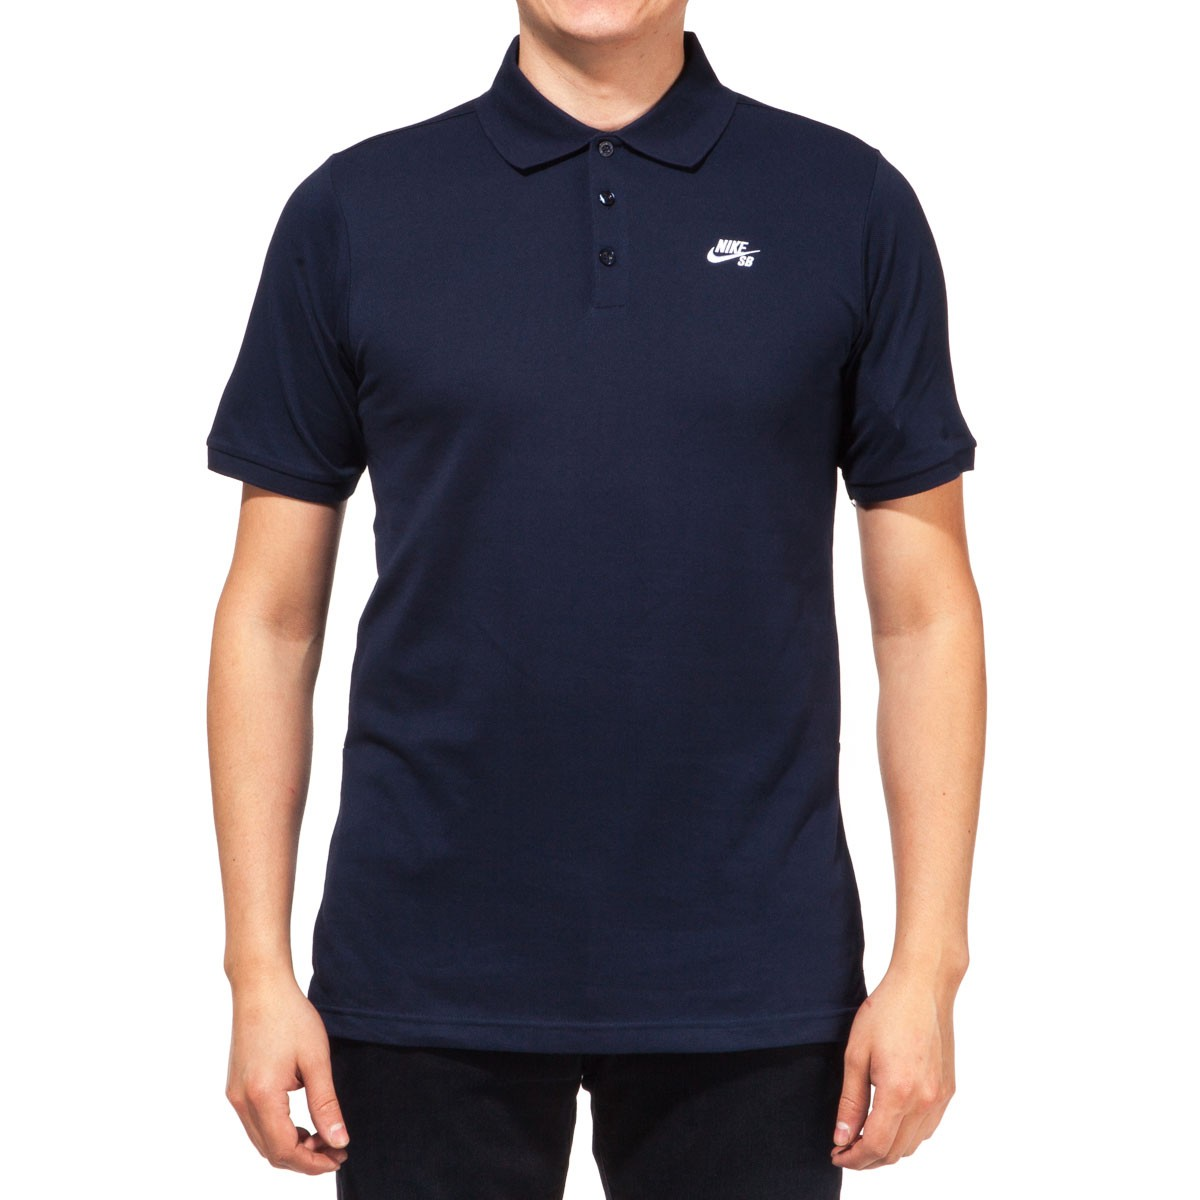 Nike SB Dri-FIT Pique Polo Shirt - Obsidian/White